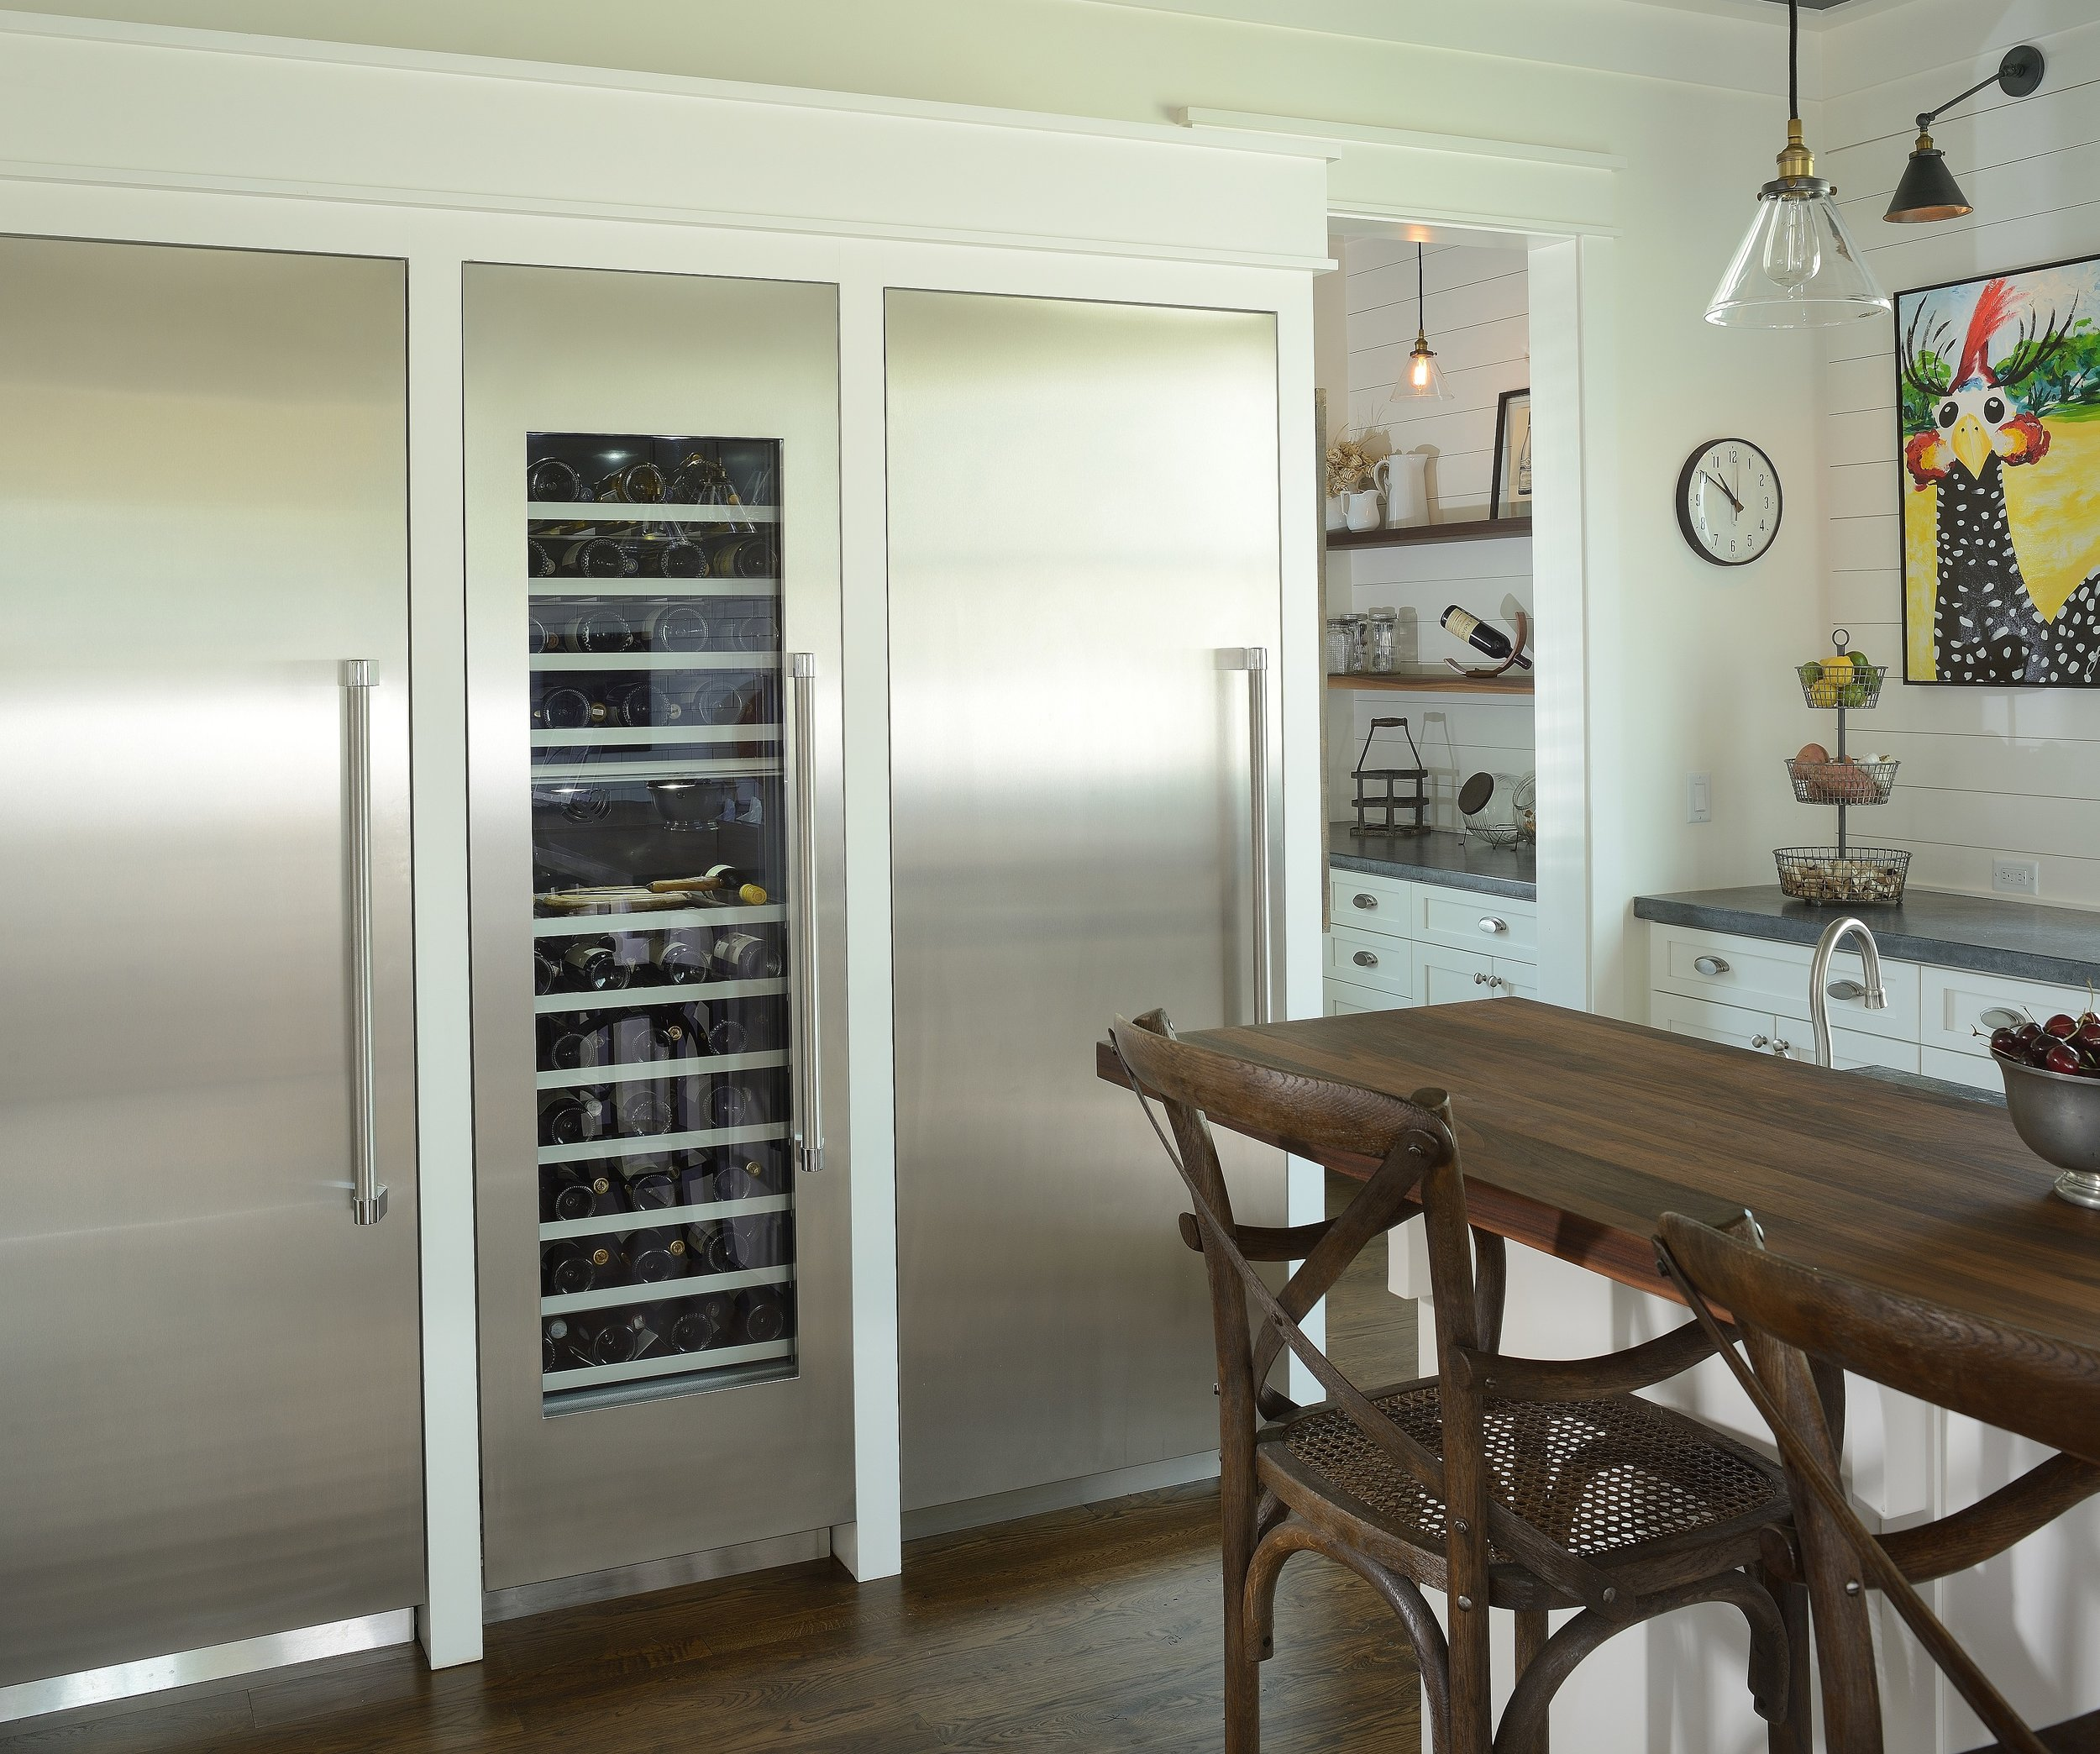 kitchen fridge - resized.jpg